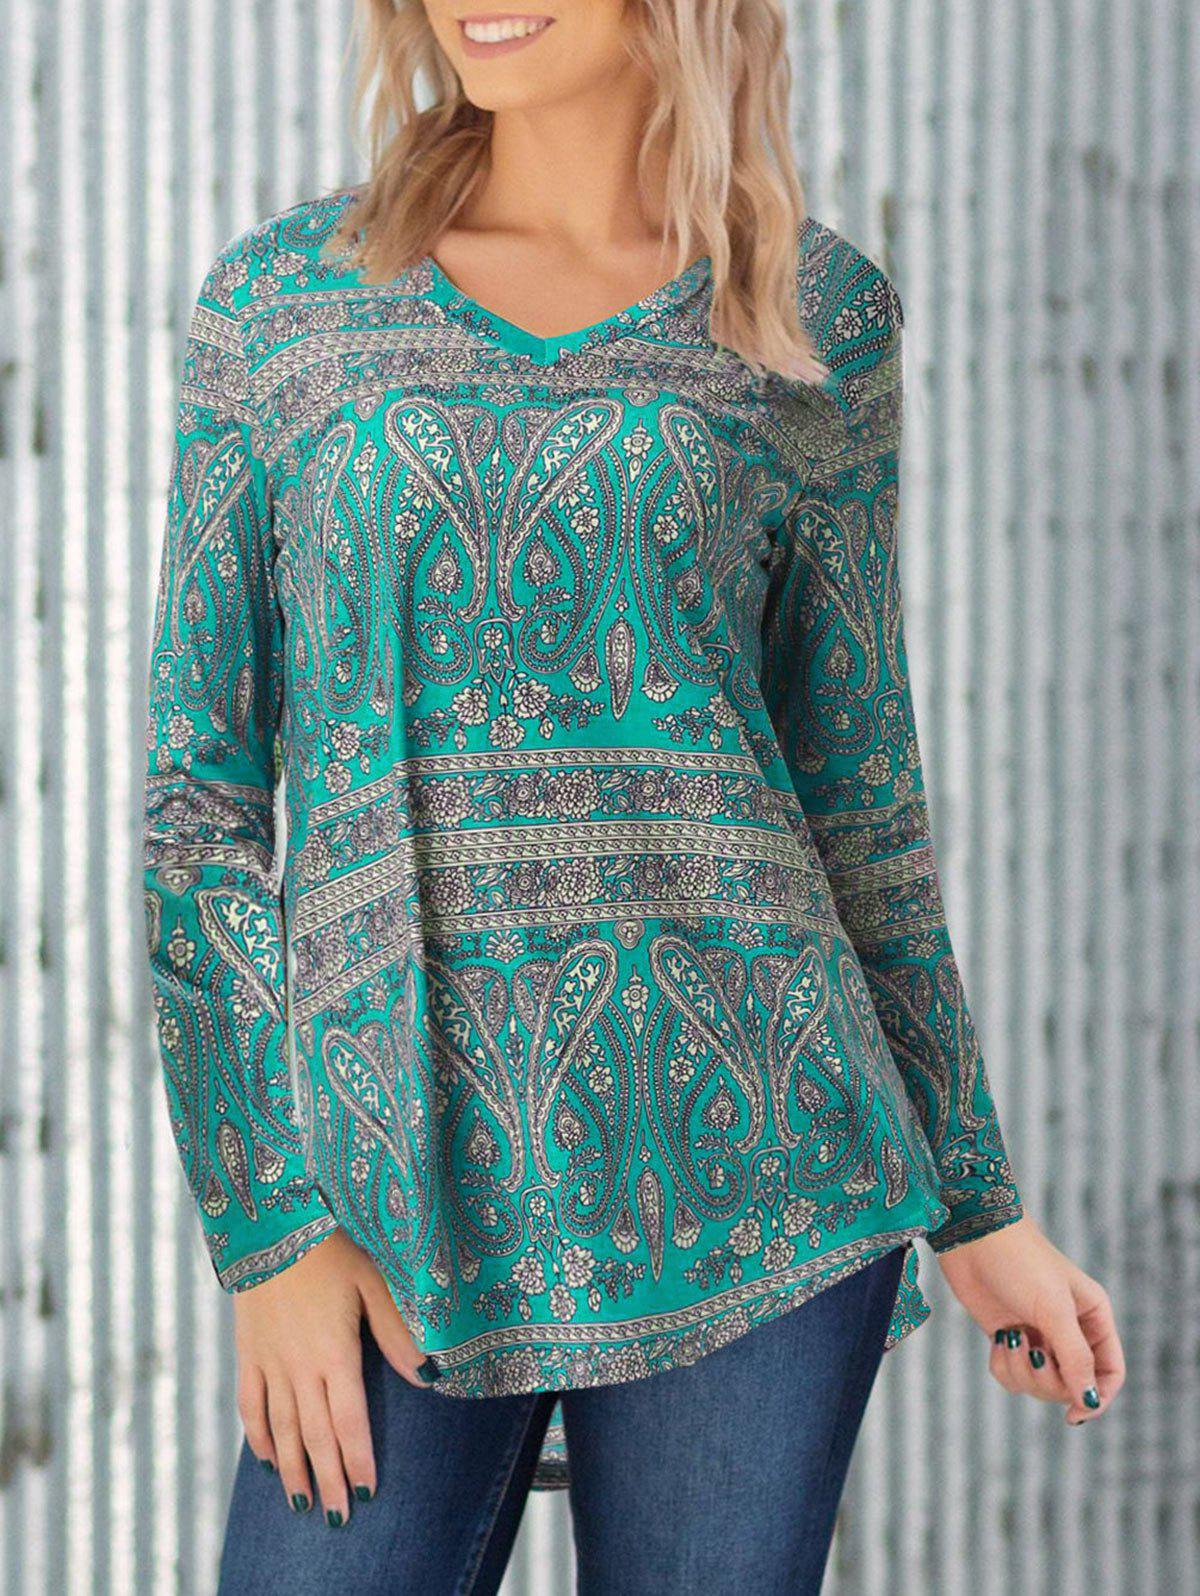 Paisley Print Patchwork High Low Top - DARK TURQUOISE M